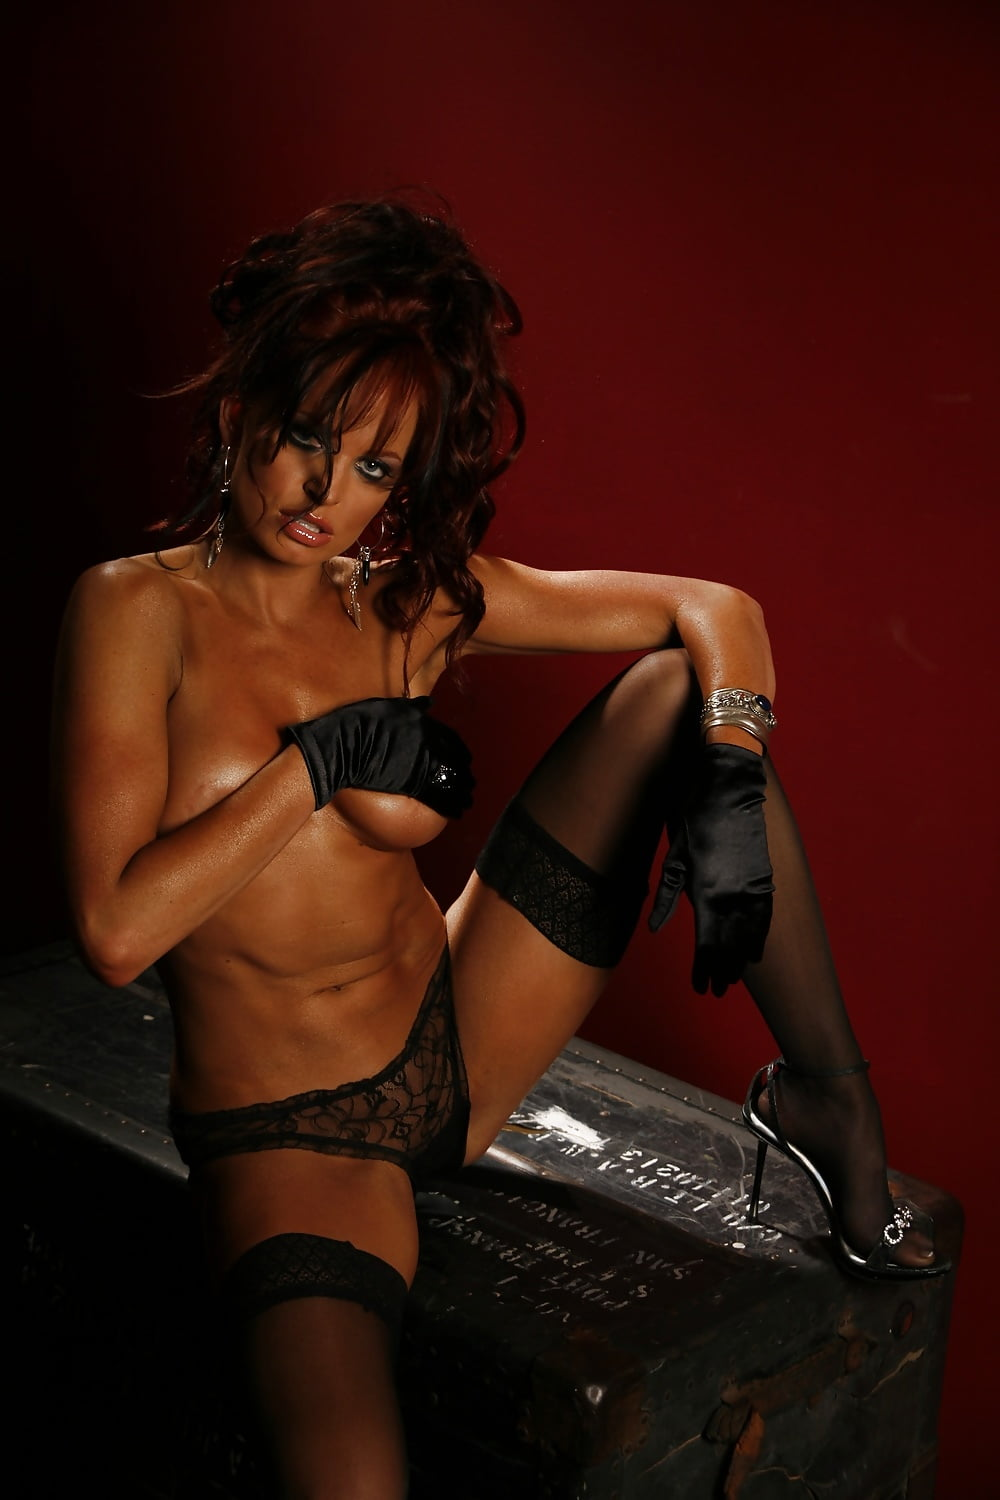 Angelina Love Tna Nude christy hemme tna wwe leak nude - 5 pics - xhamster